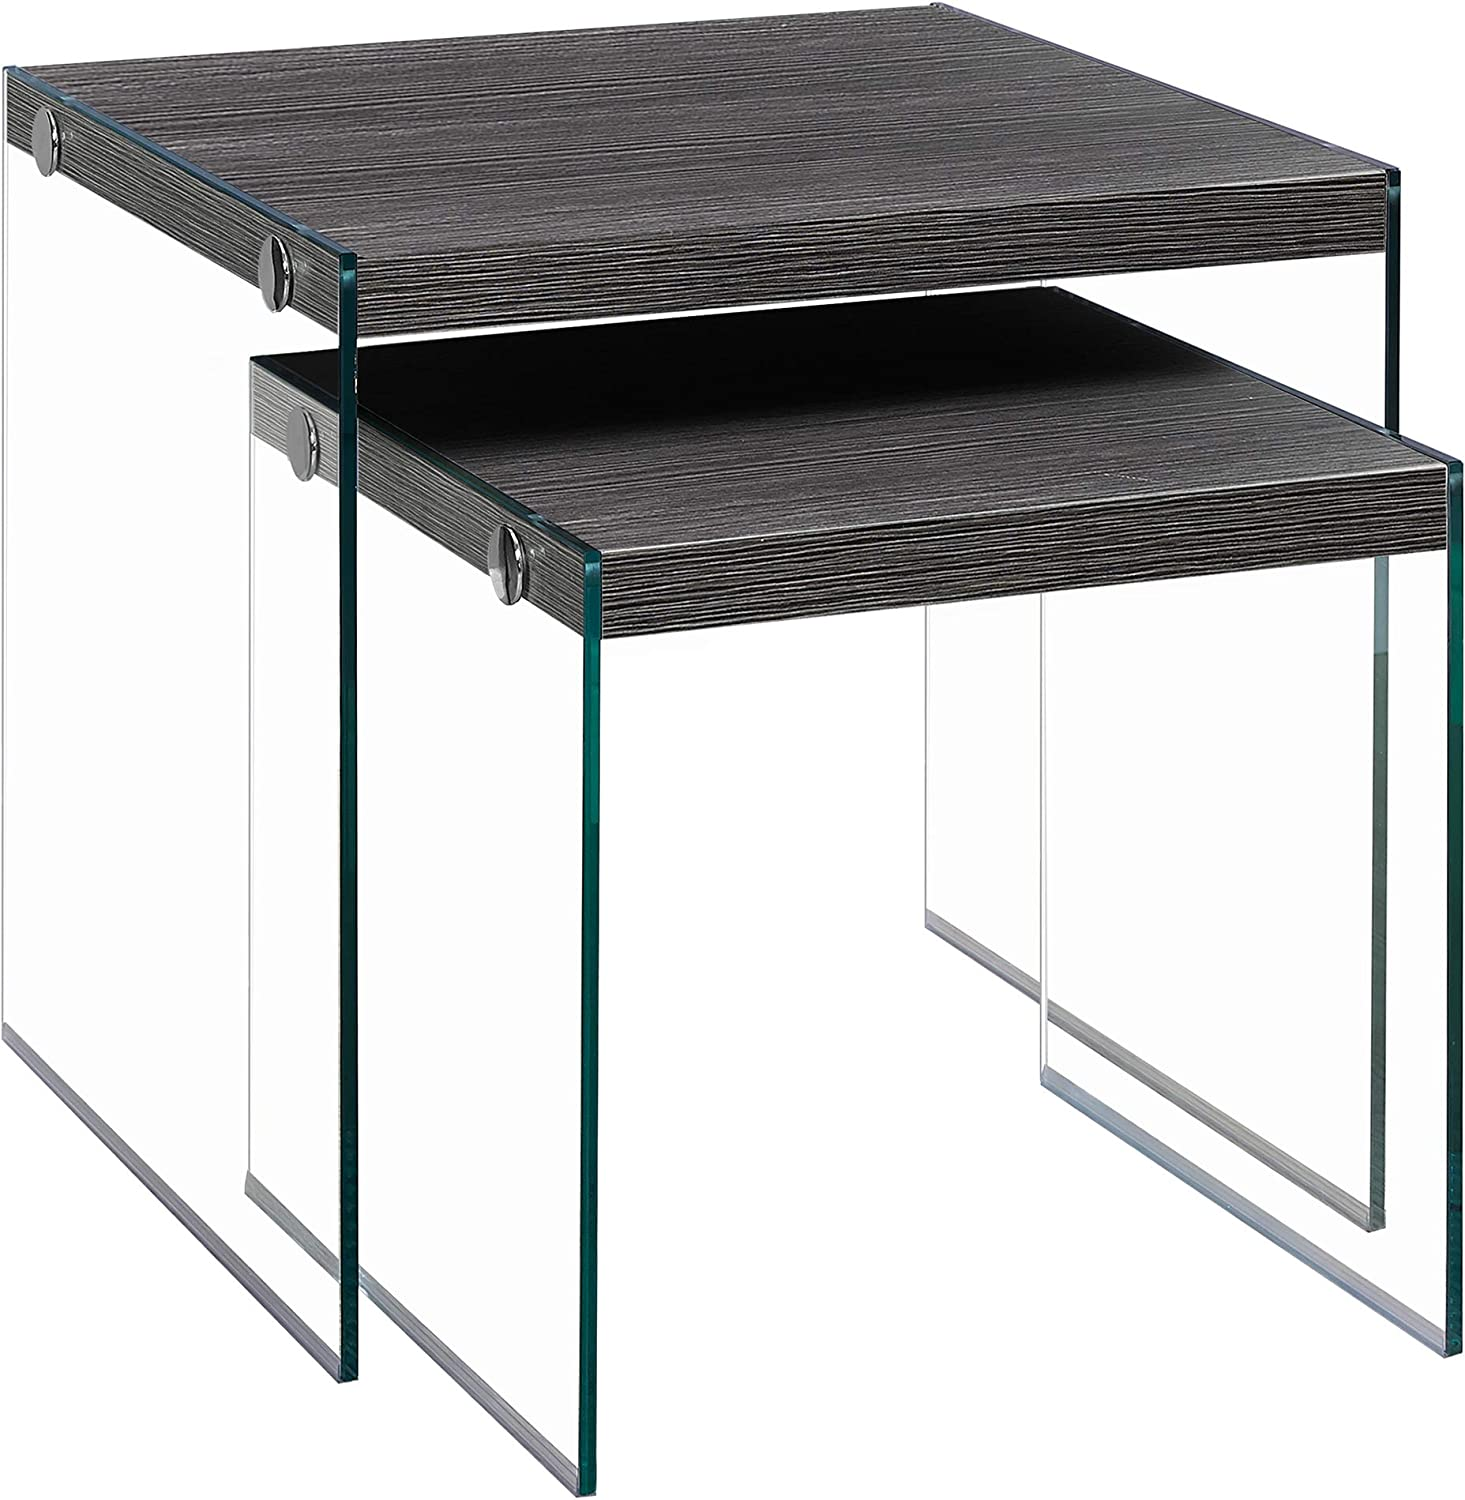 Monarch Specialties I 3221,Nesting Table, Tempered Glass, Grey